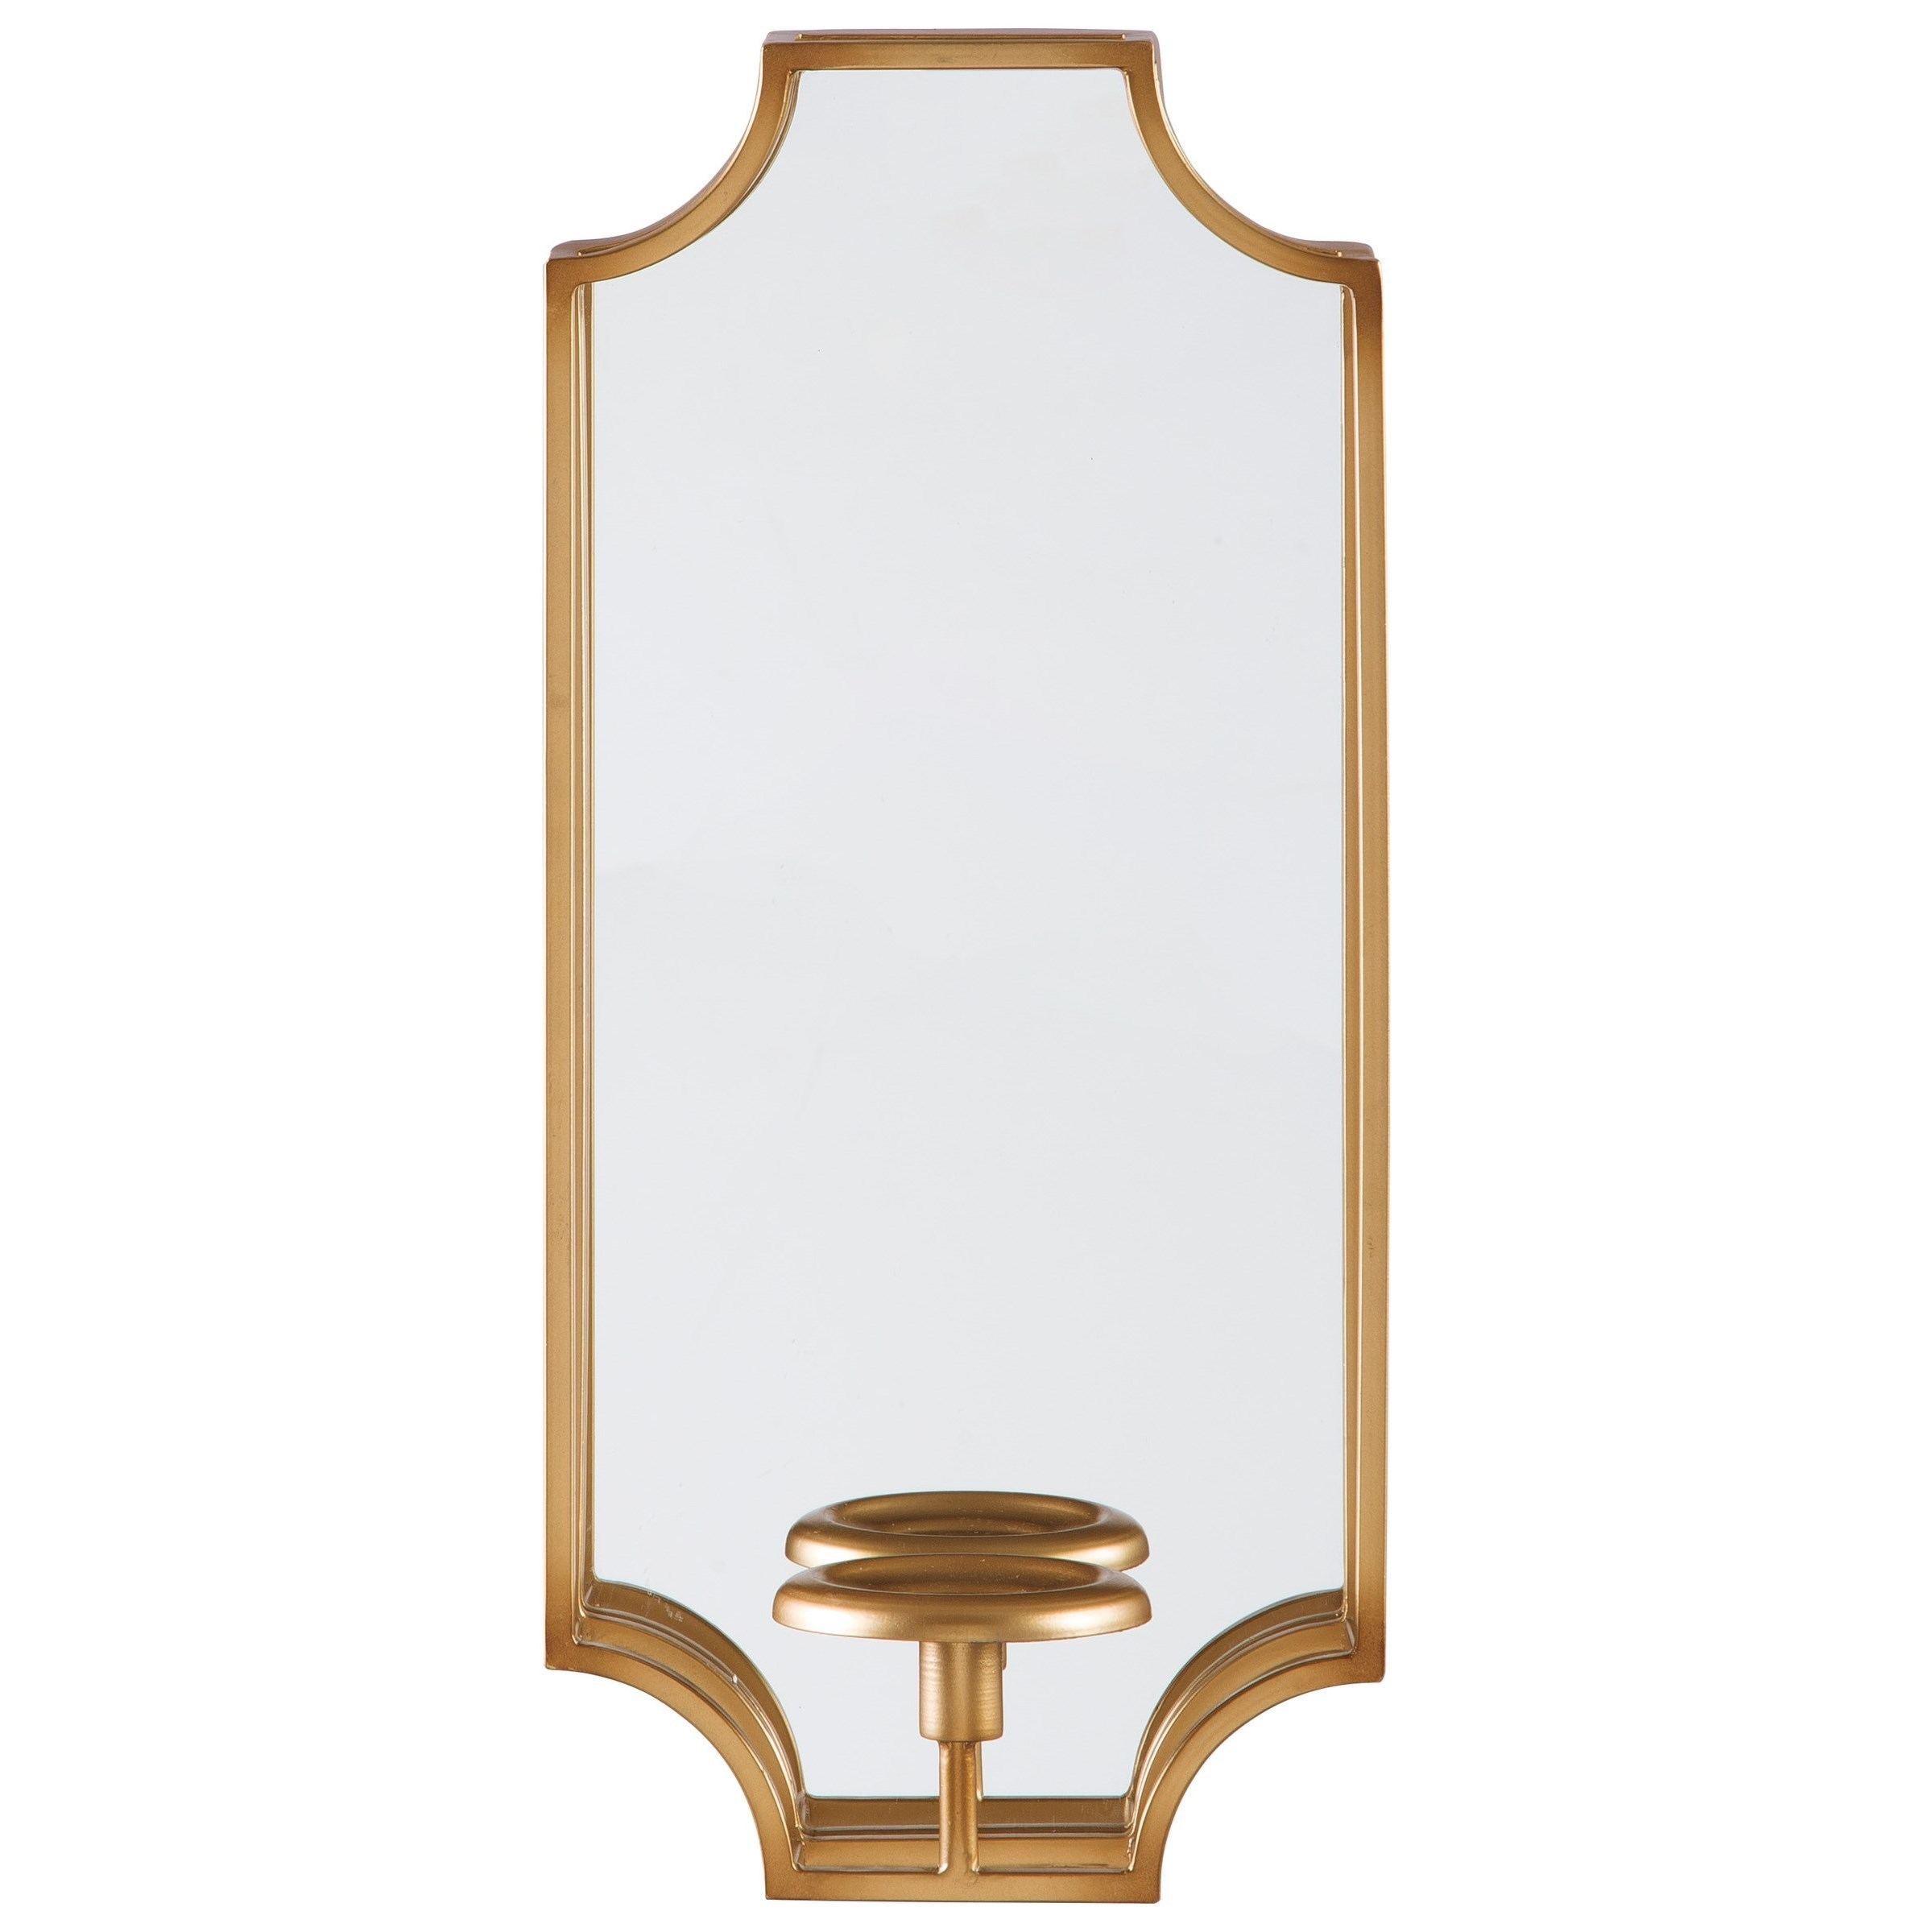 Accent Mirrors Dumi Gold Finish Wall Sconce by Ashley Furniture Signature Design at Del Sol Furniture